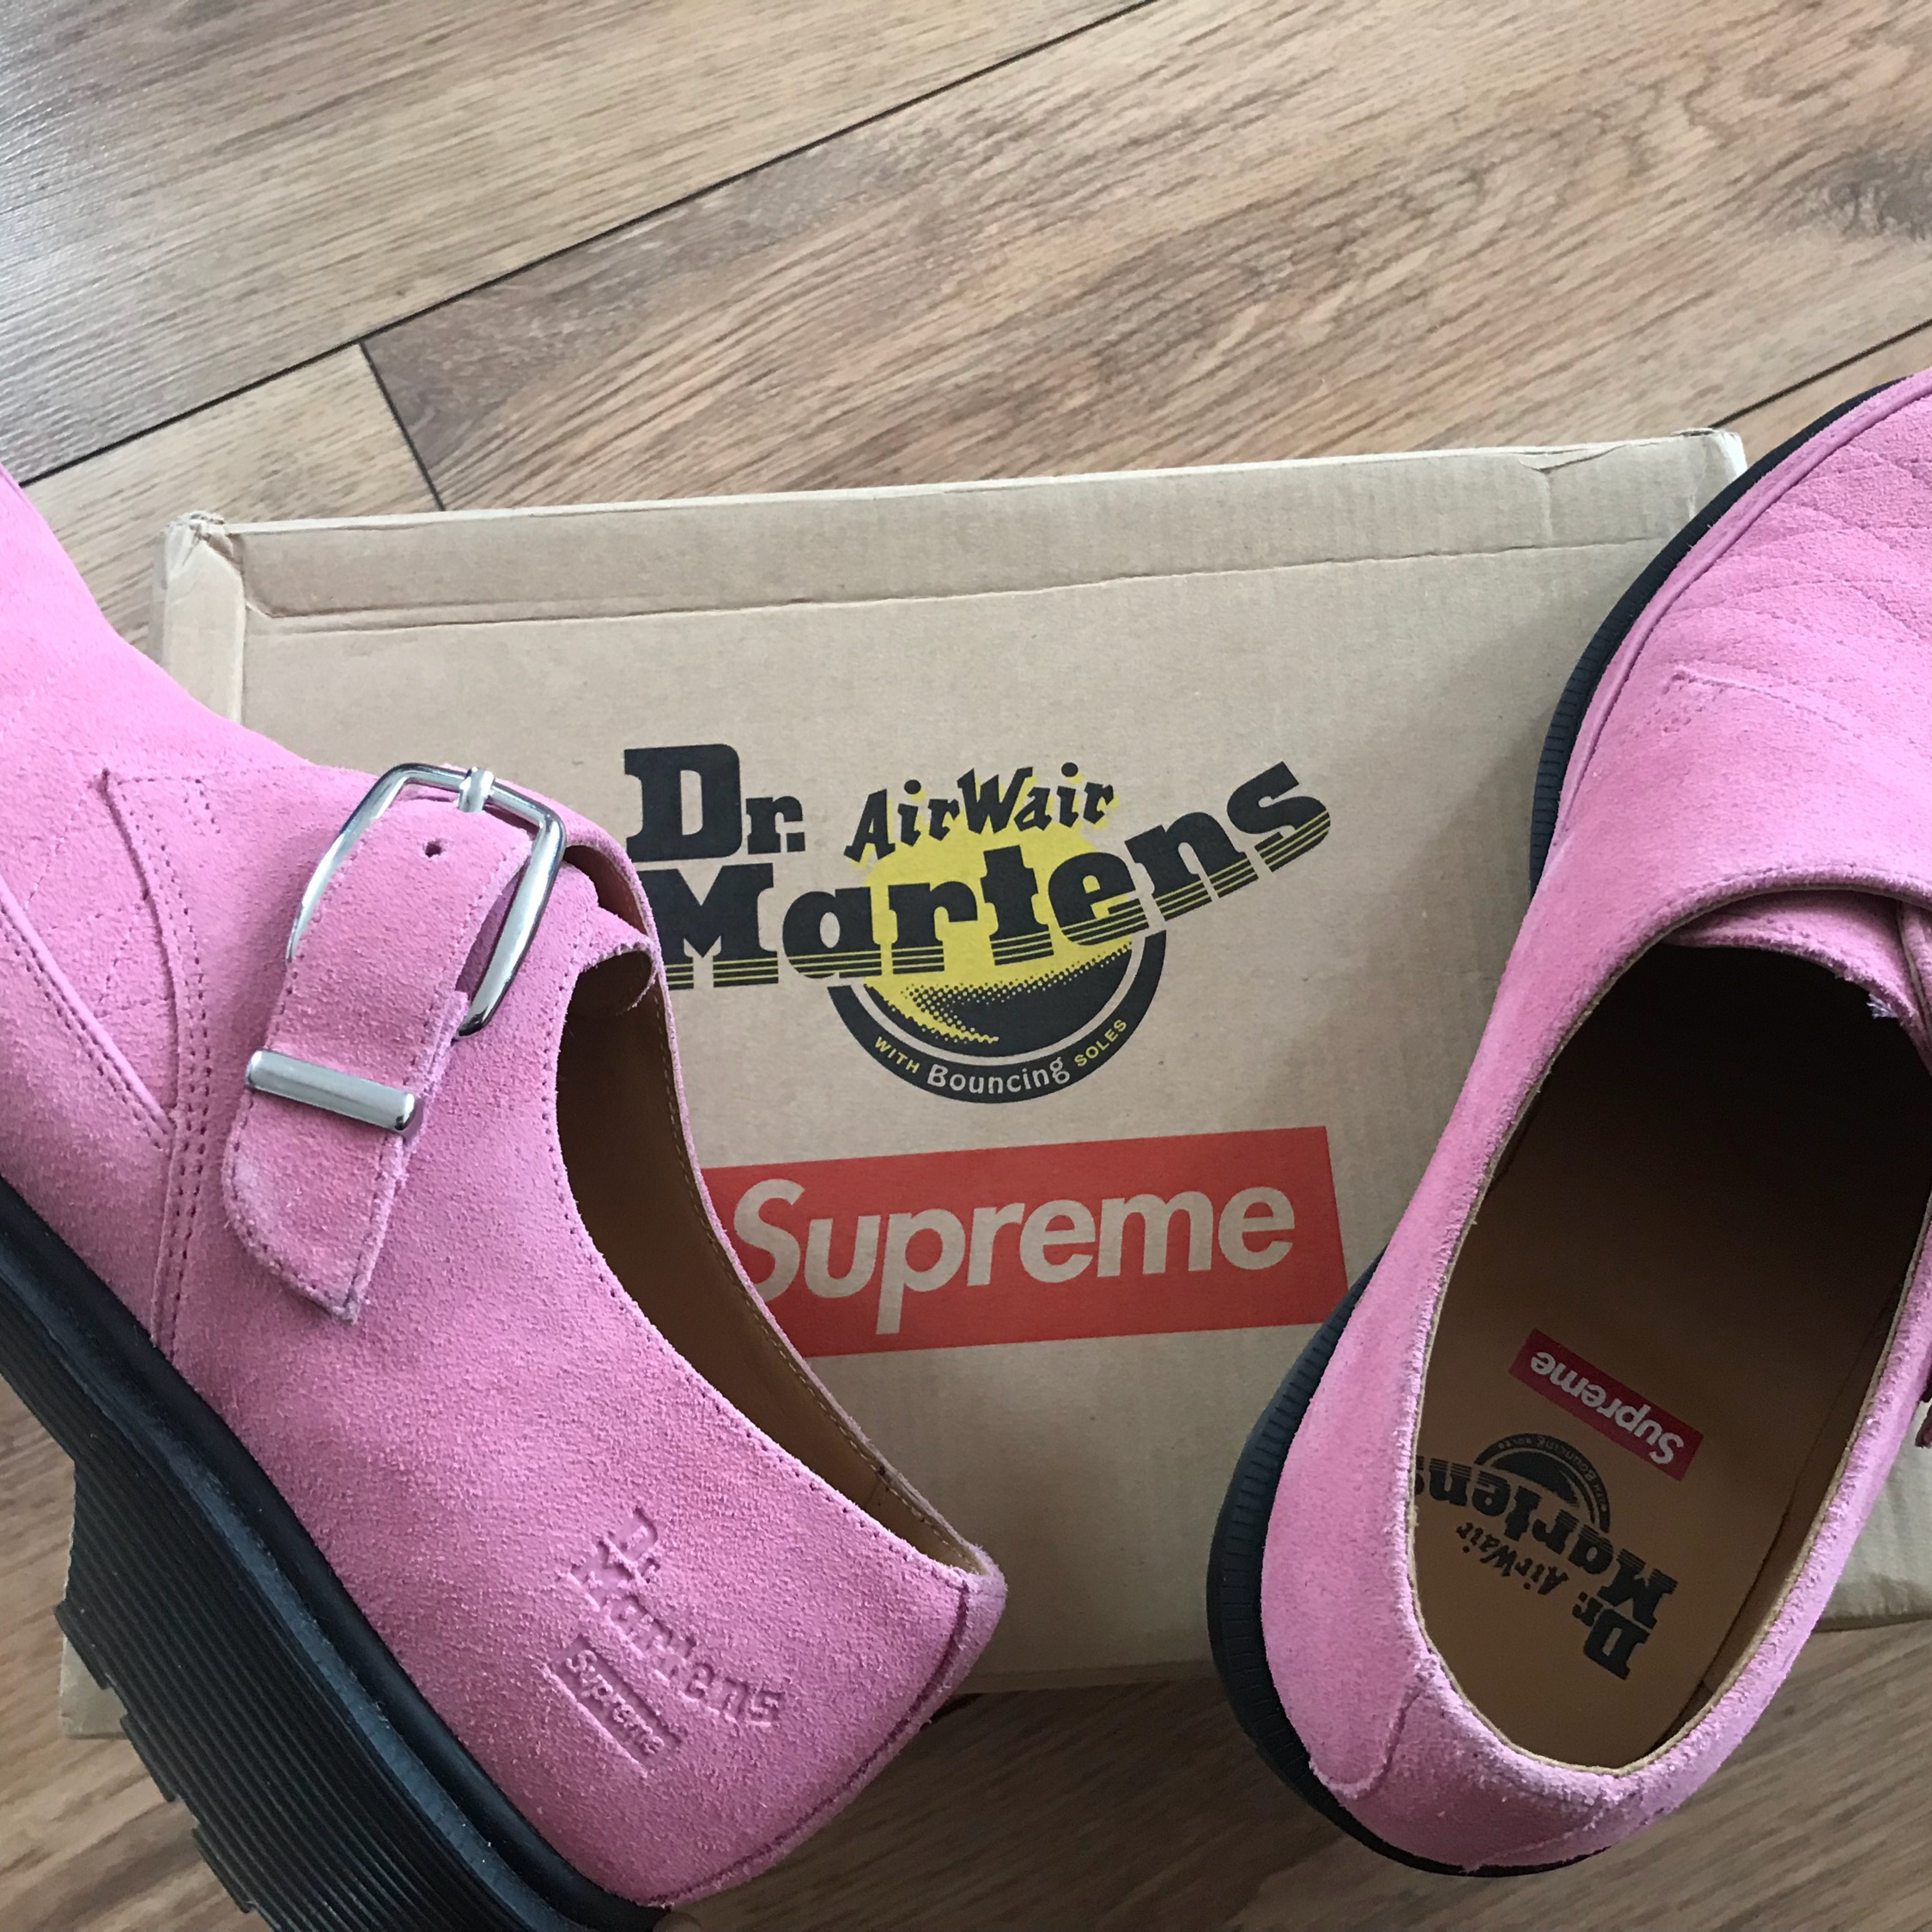 Ss17 Supreme X Dr. Martens Monk Strap Creepers